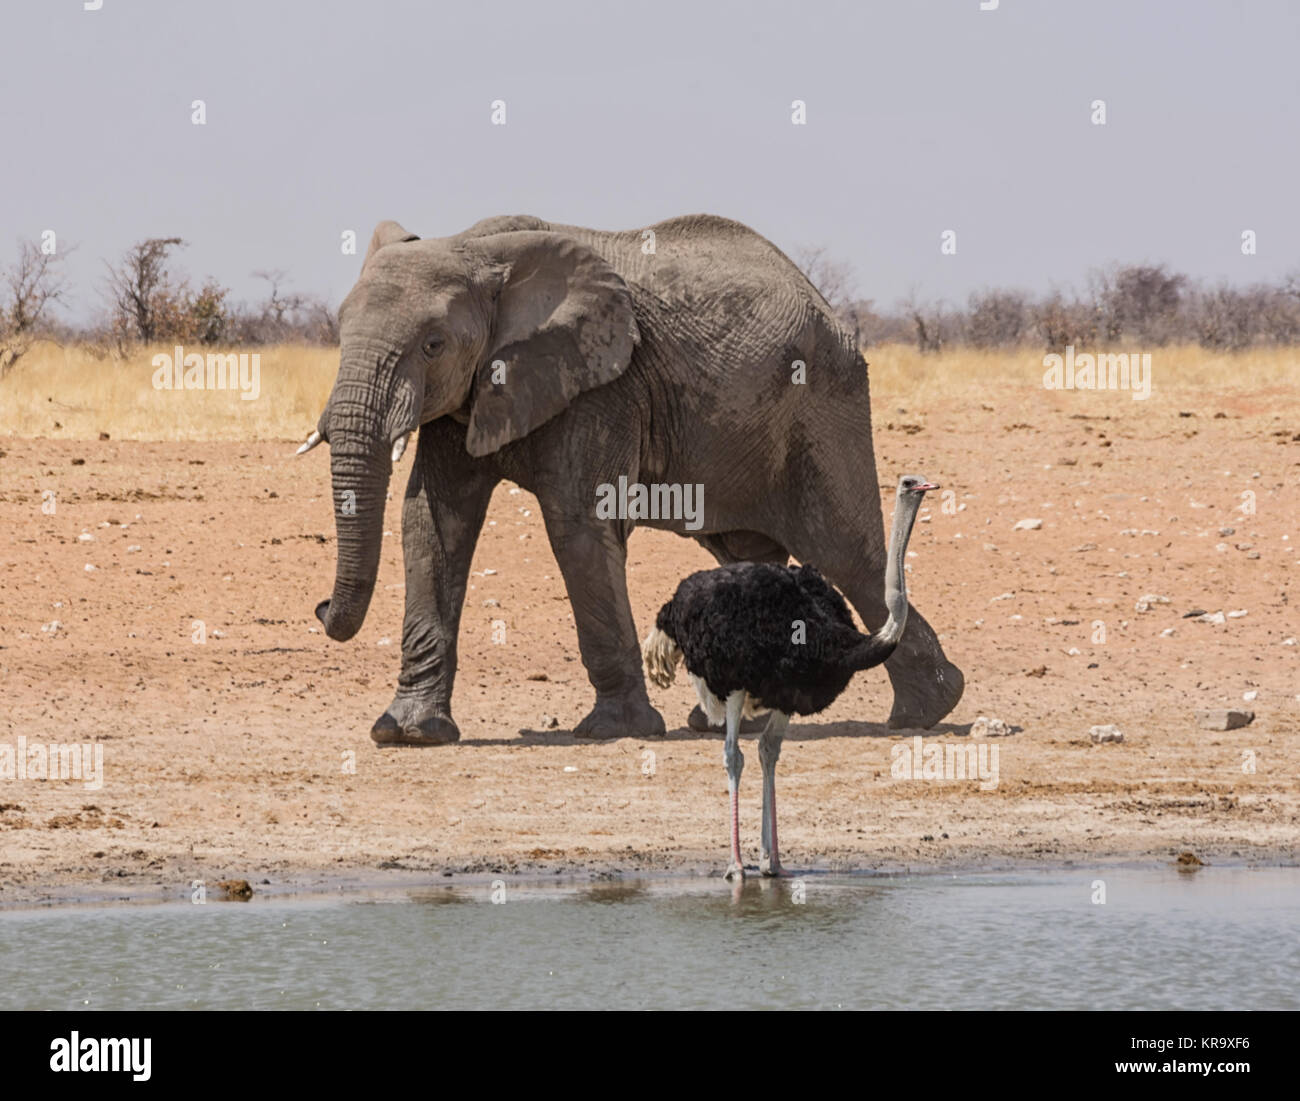 An Ostrich and an Elephant at a watering hole in the Namibian savanna - Stock Image